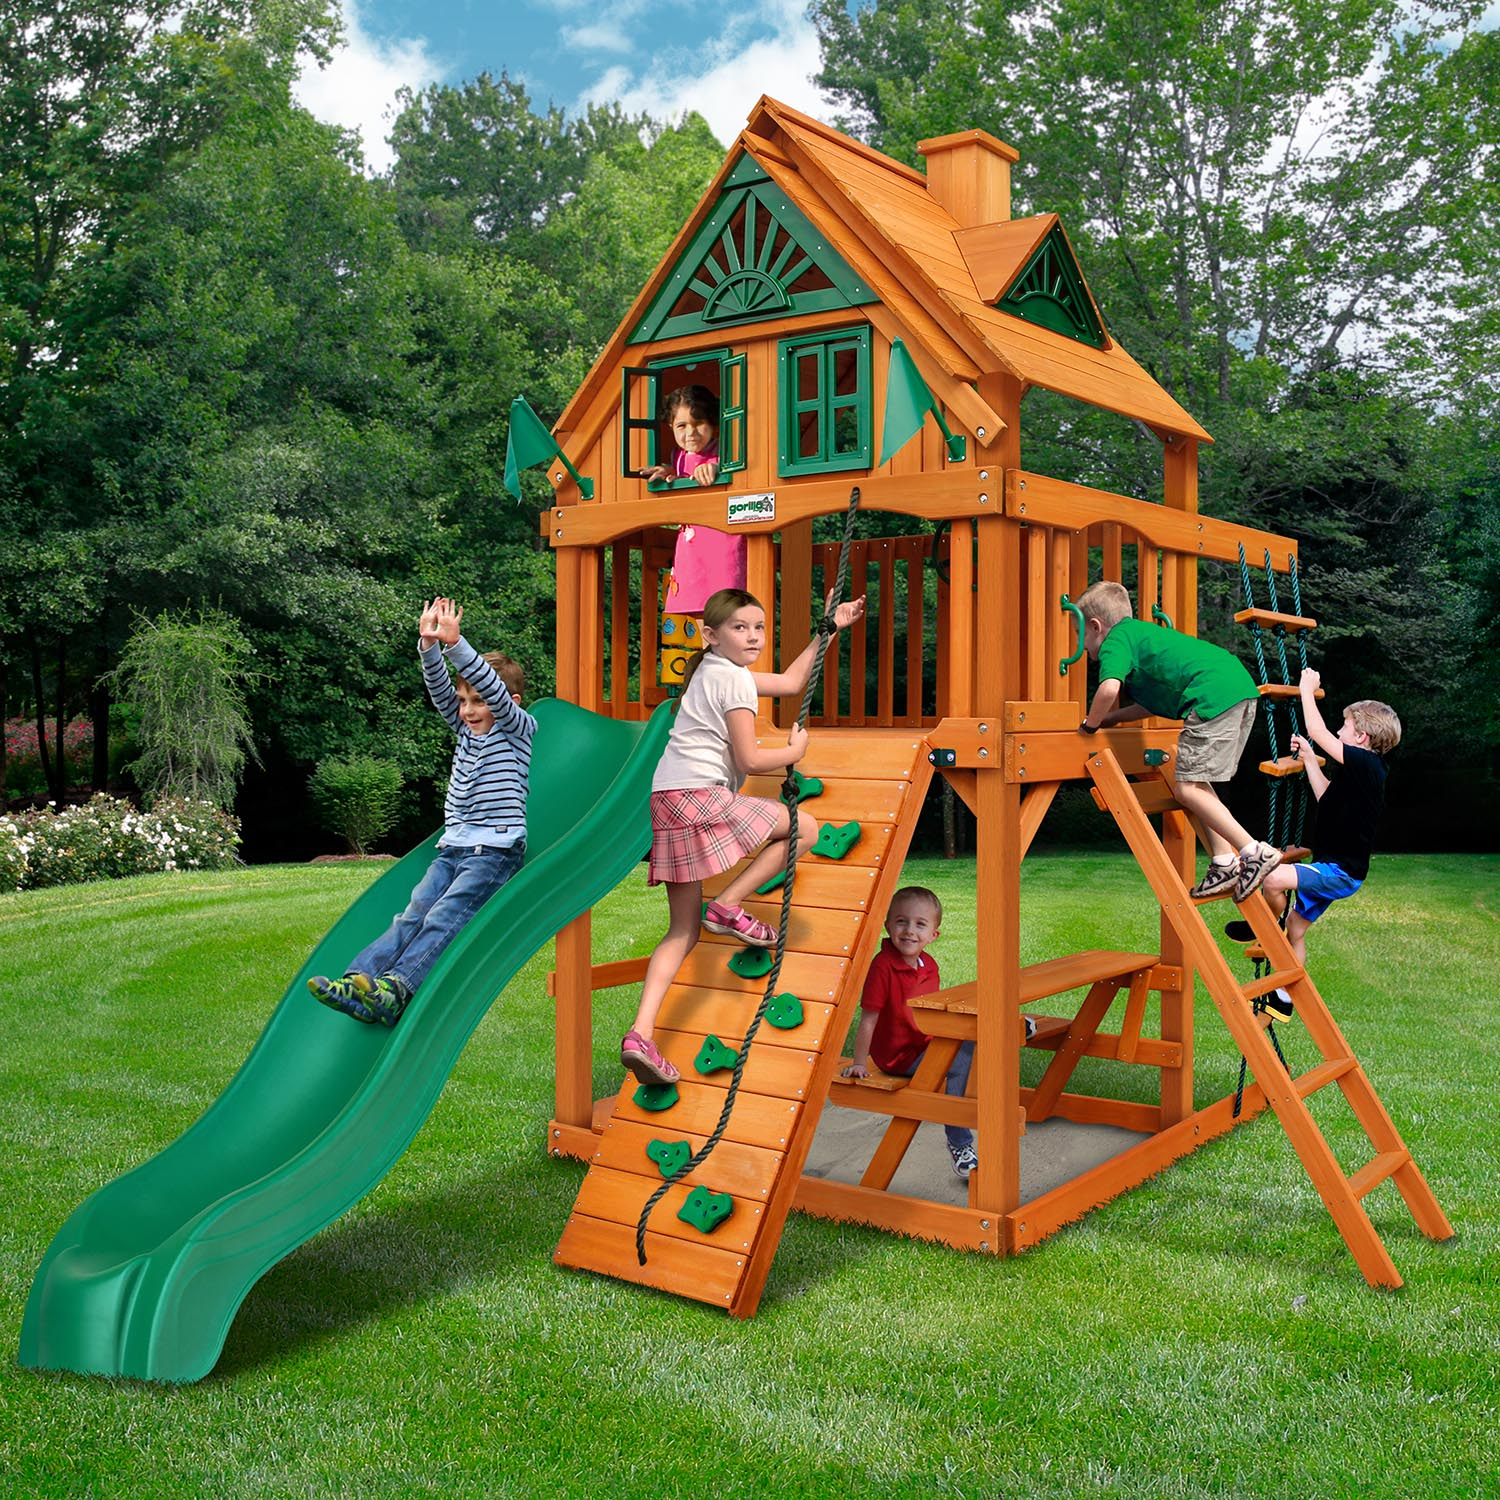 Gorilla-Playsets-Chateau-Tower-Treehouse-Wooden-Swingset